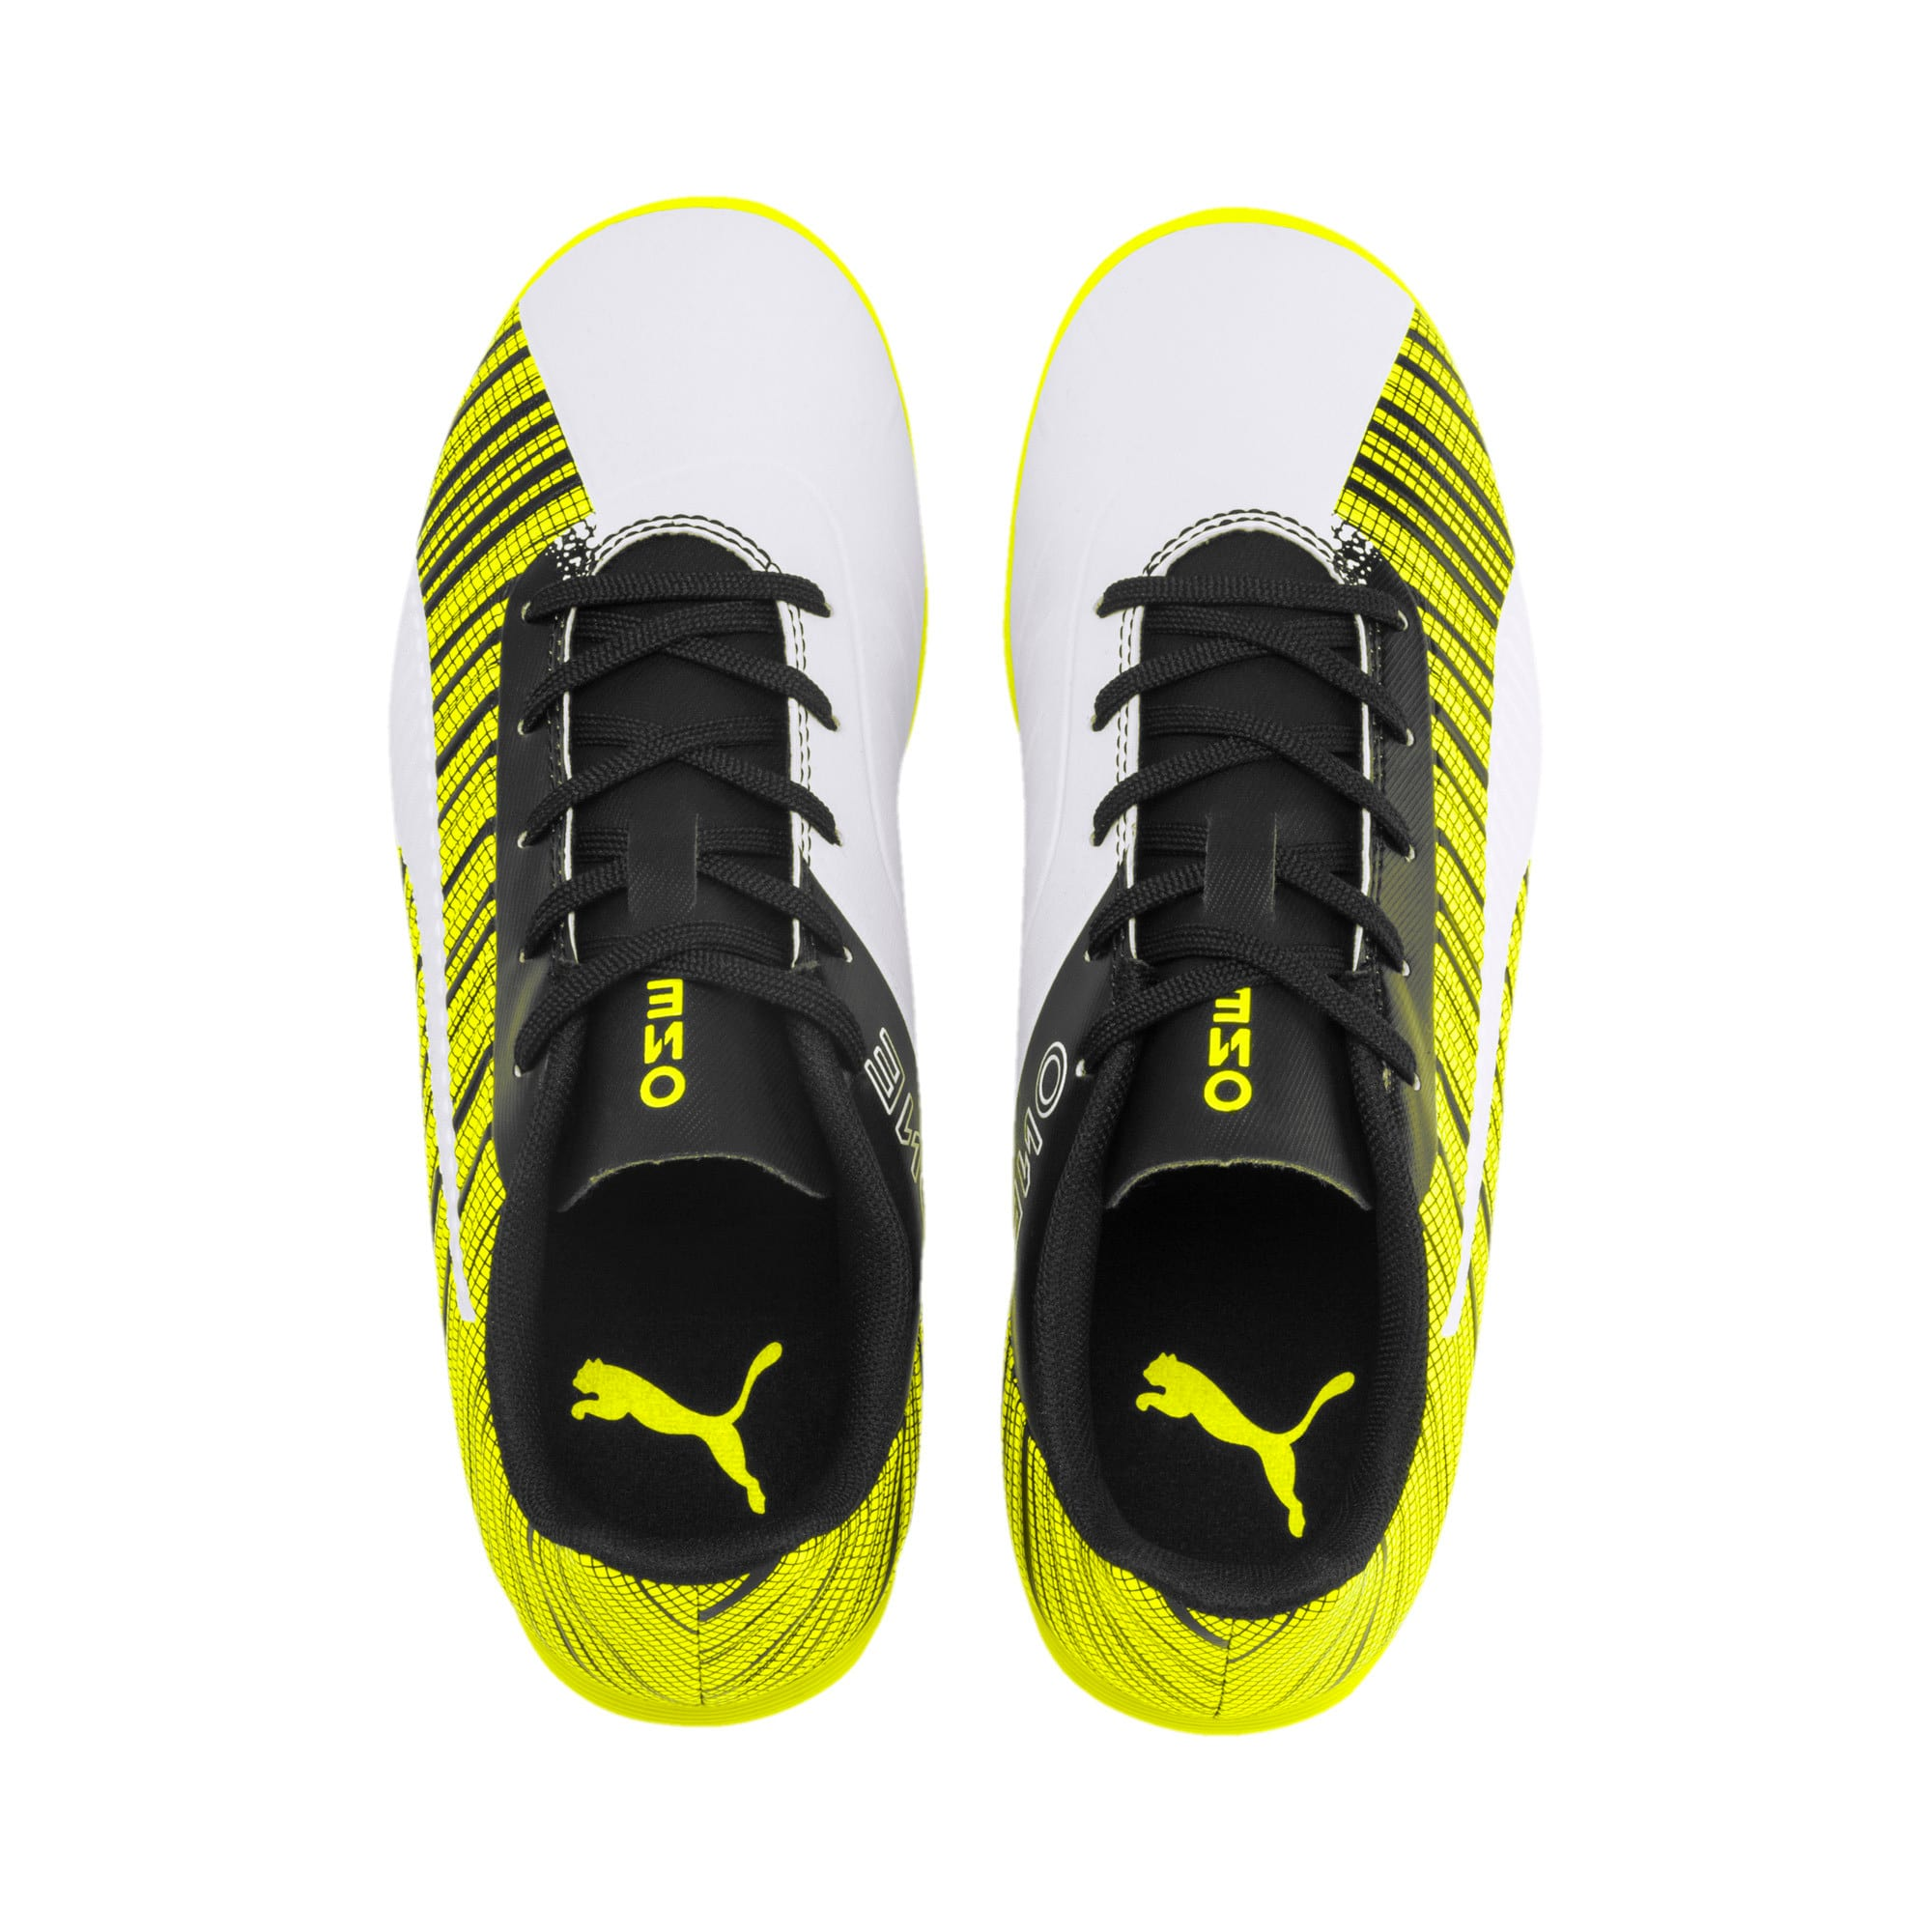 Thumbnail 6 of PUMA ONE 5.4 IT Youth Football Boots, White-Black-Yellow Alert, medium